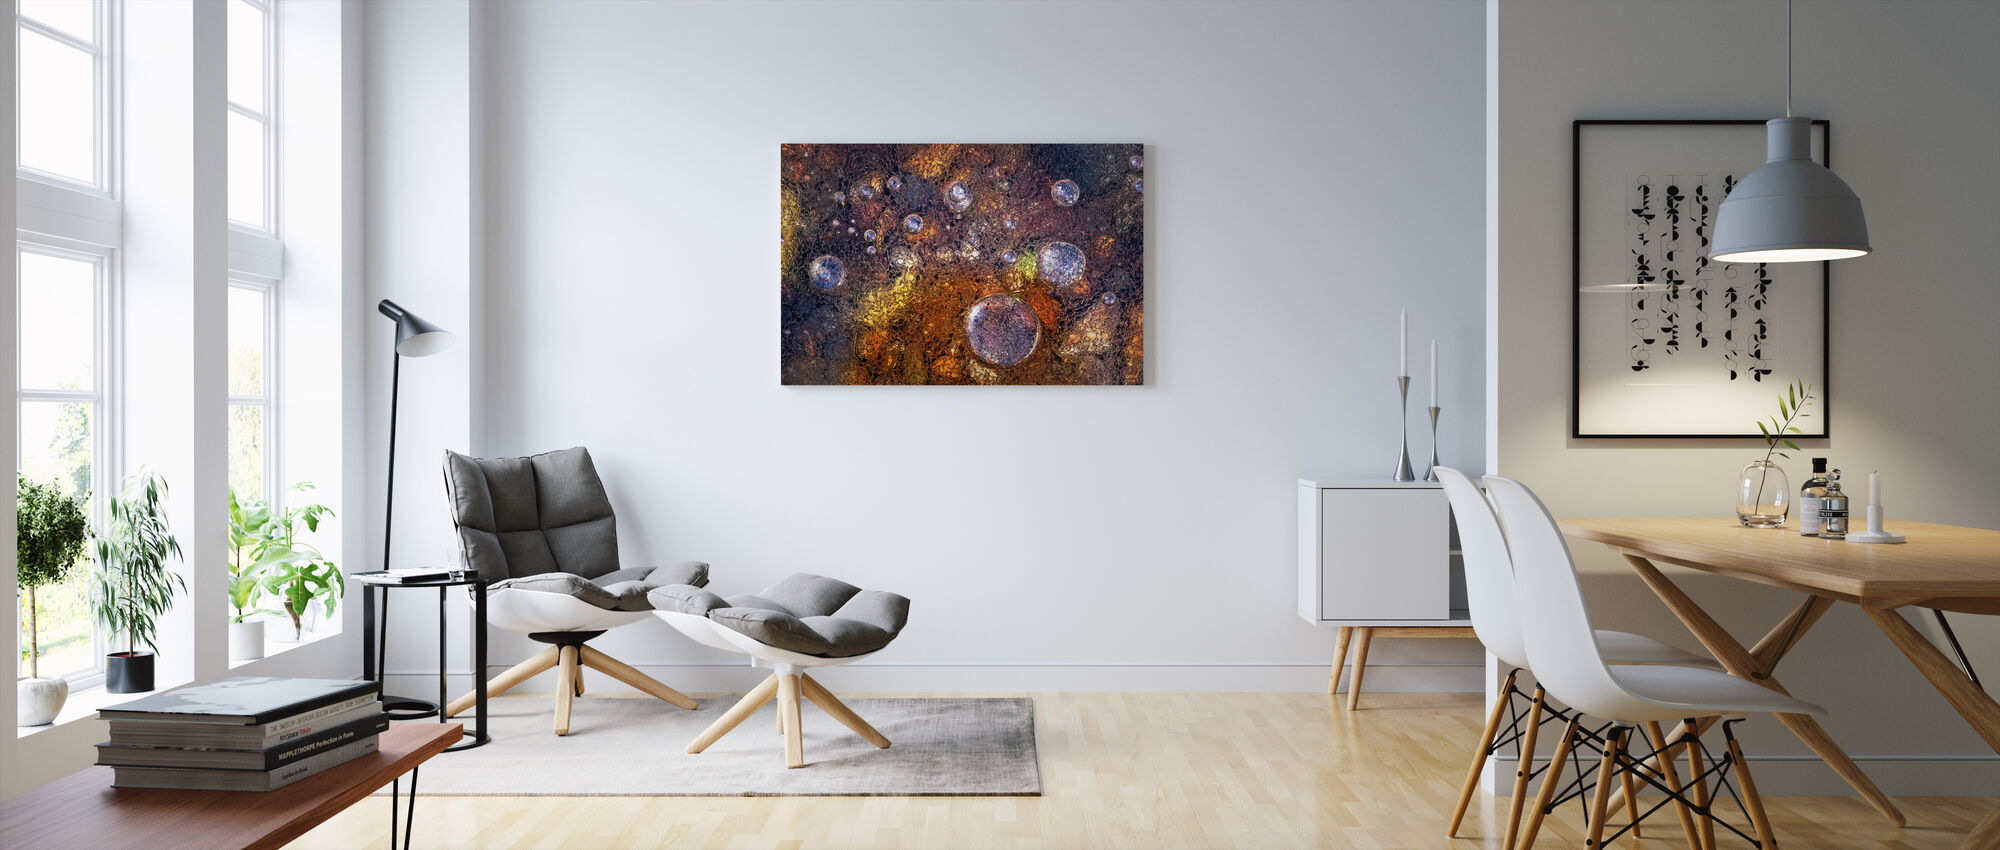 Winter Over Autumn - Canvas print - Living Room